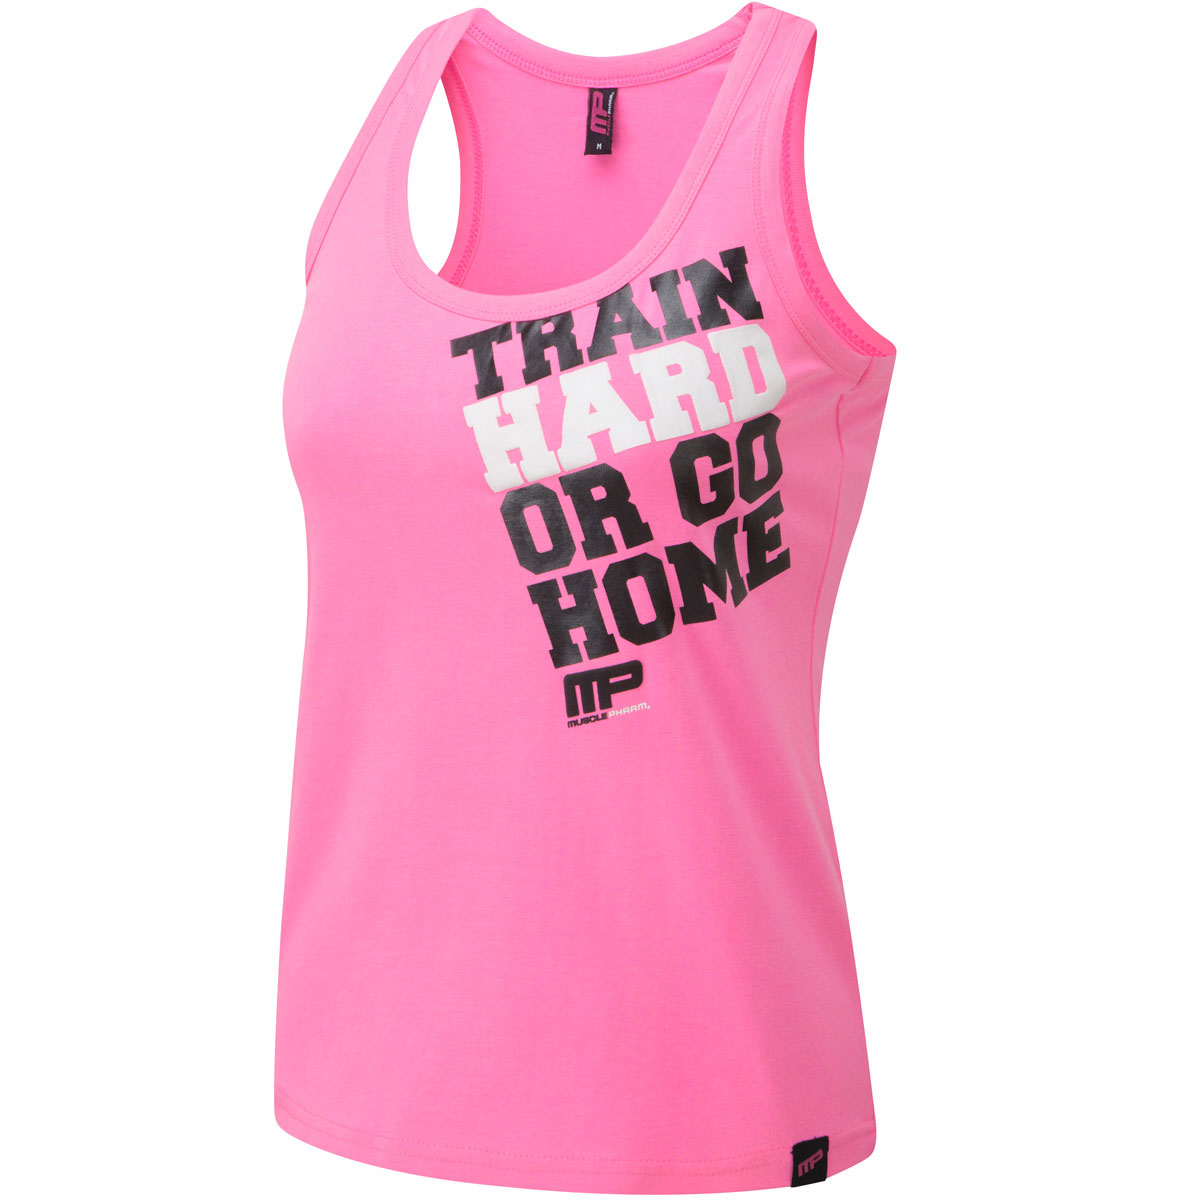 Musclepharm womens printed vest sleeveless t shirt gym for Gym printed t shirts